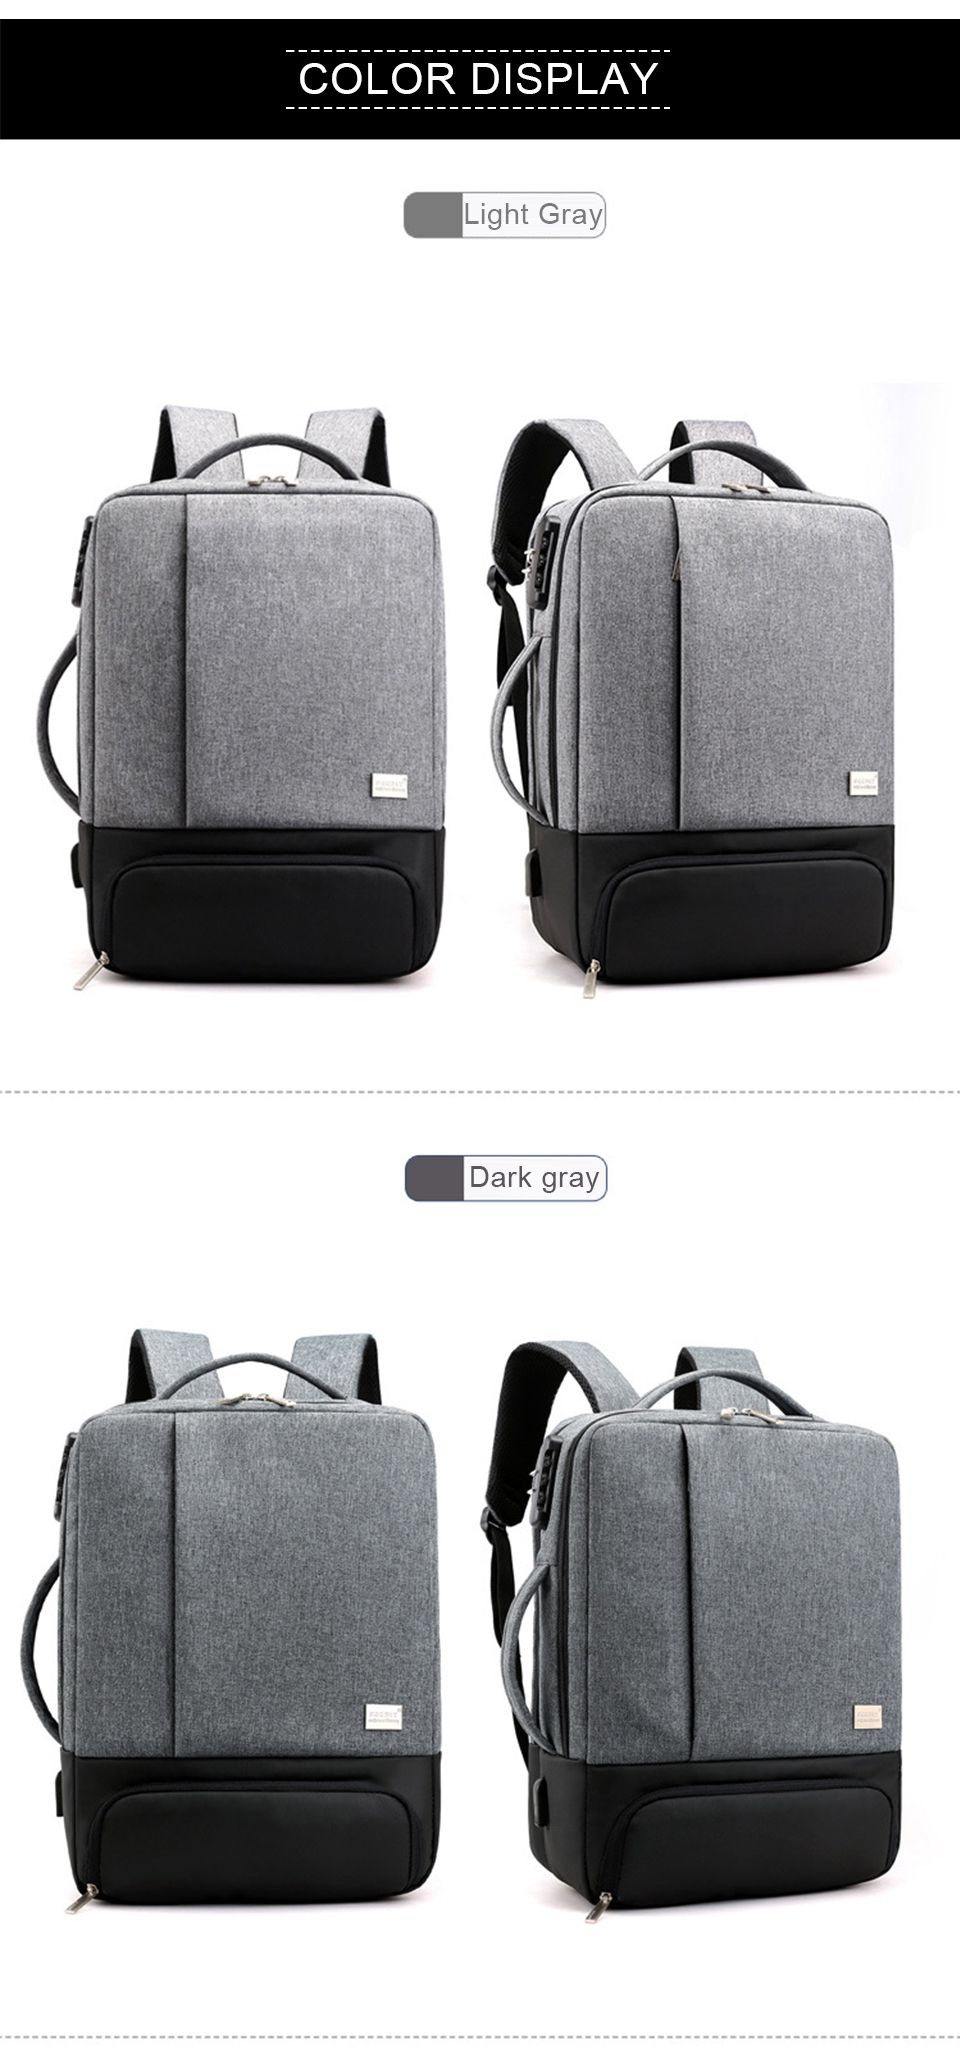 Laptop-Backpack-17-Inch-15.6-Anti-Theft-Backpack-Men-Business-Back-Pack-Male-Notebook-Travel-Student-Women-Bagpack-Office-Bags_11